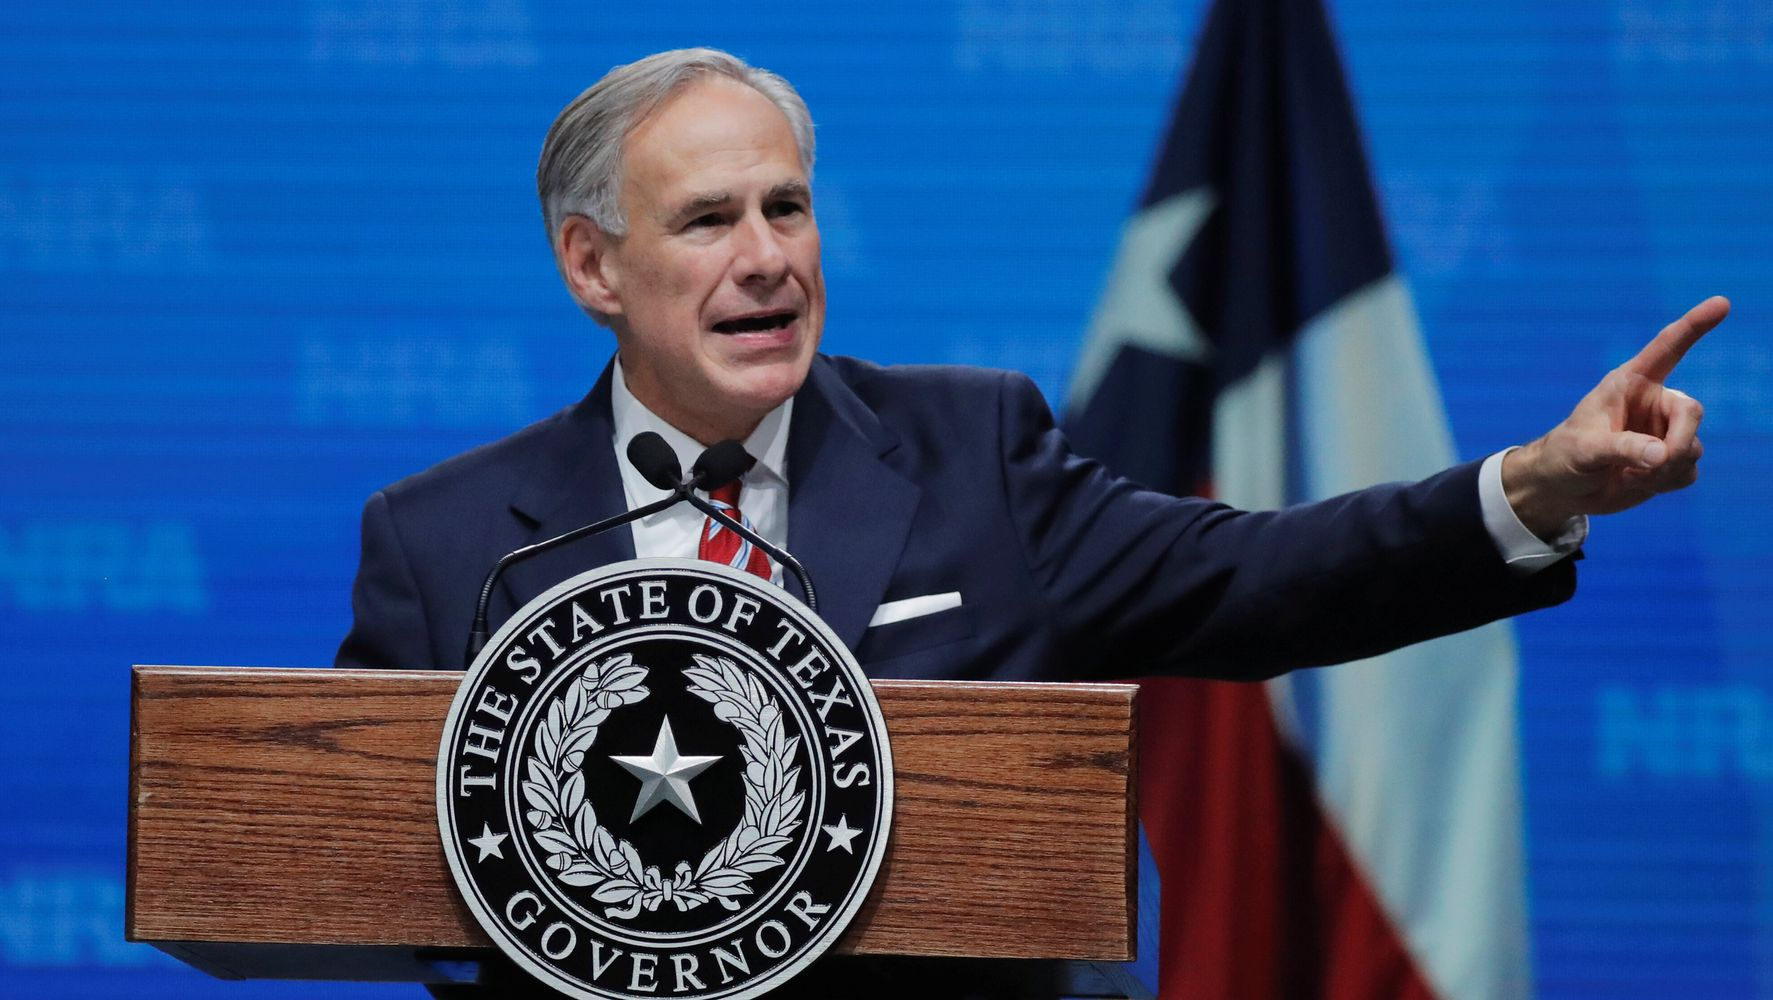 Citing COVID-19 Concerns, Texas Governor Bans Ground Transportation Of Migrants